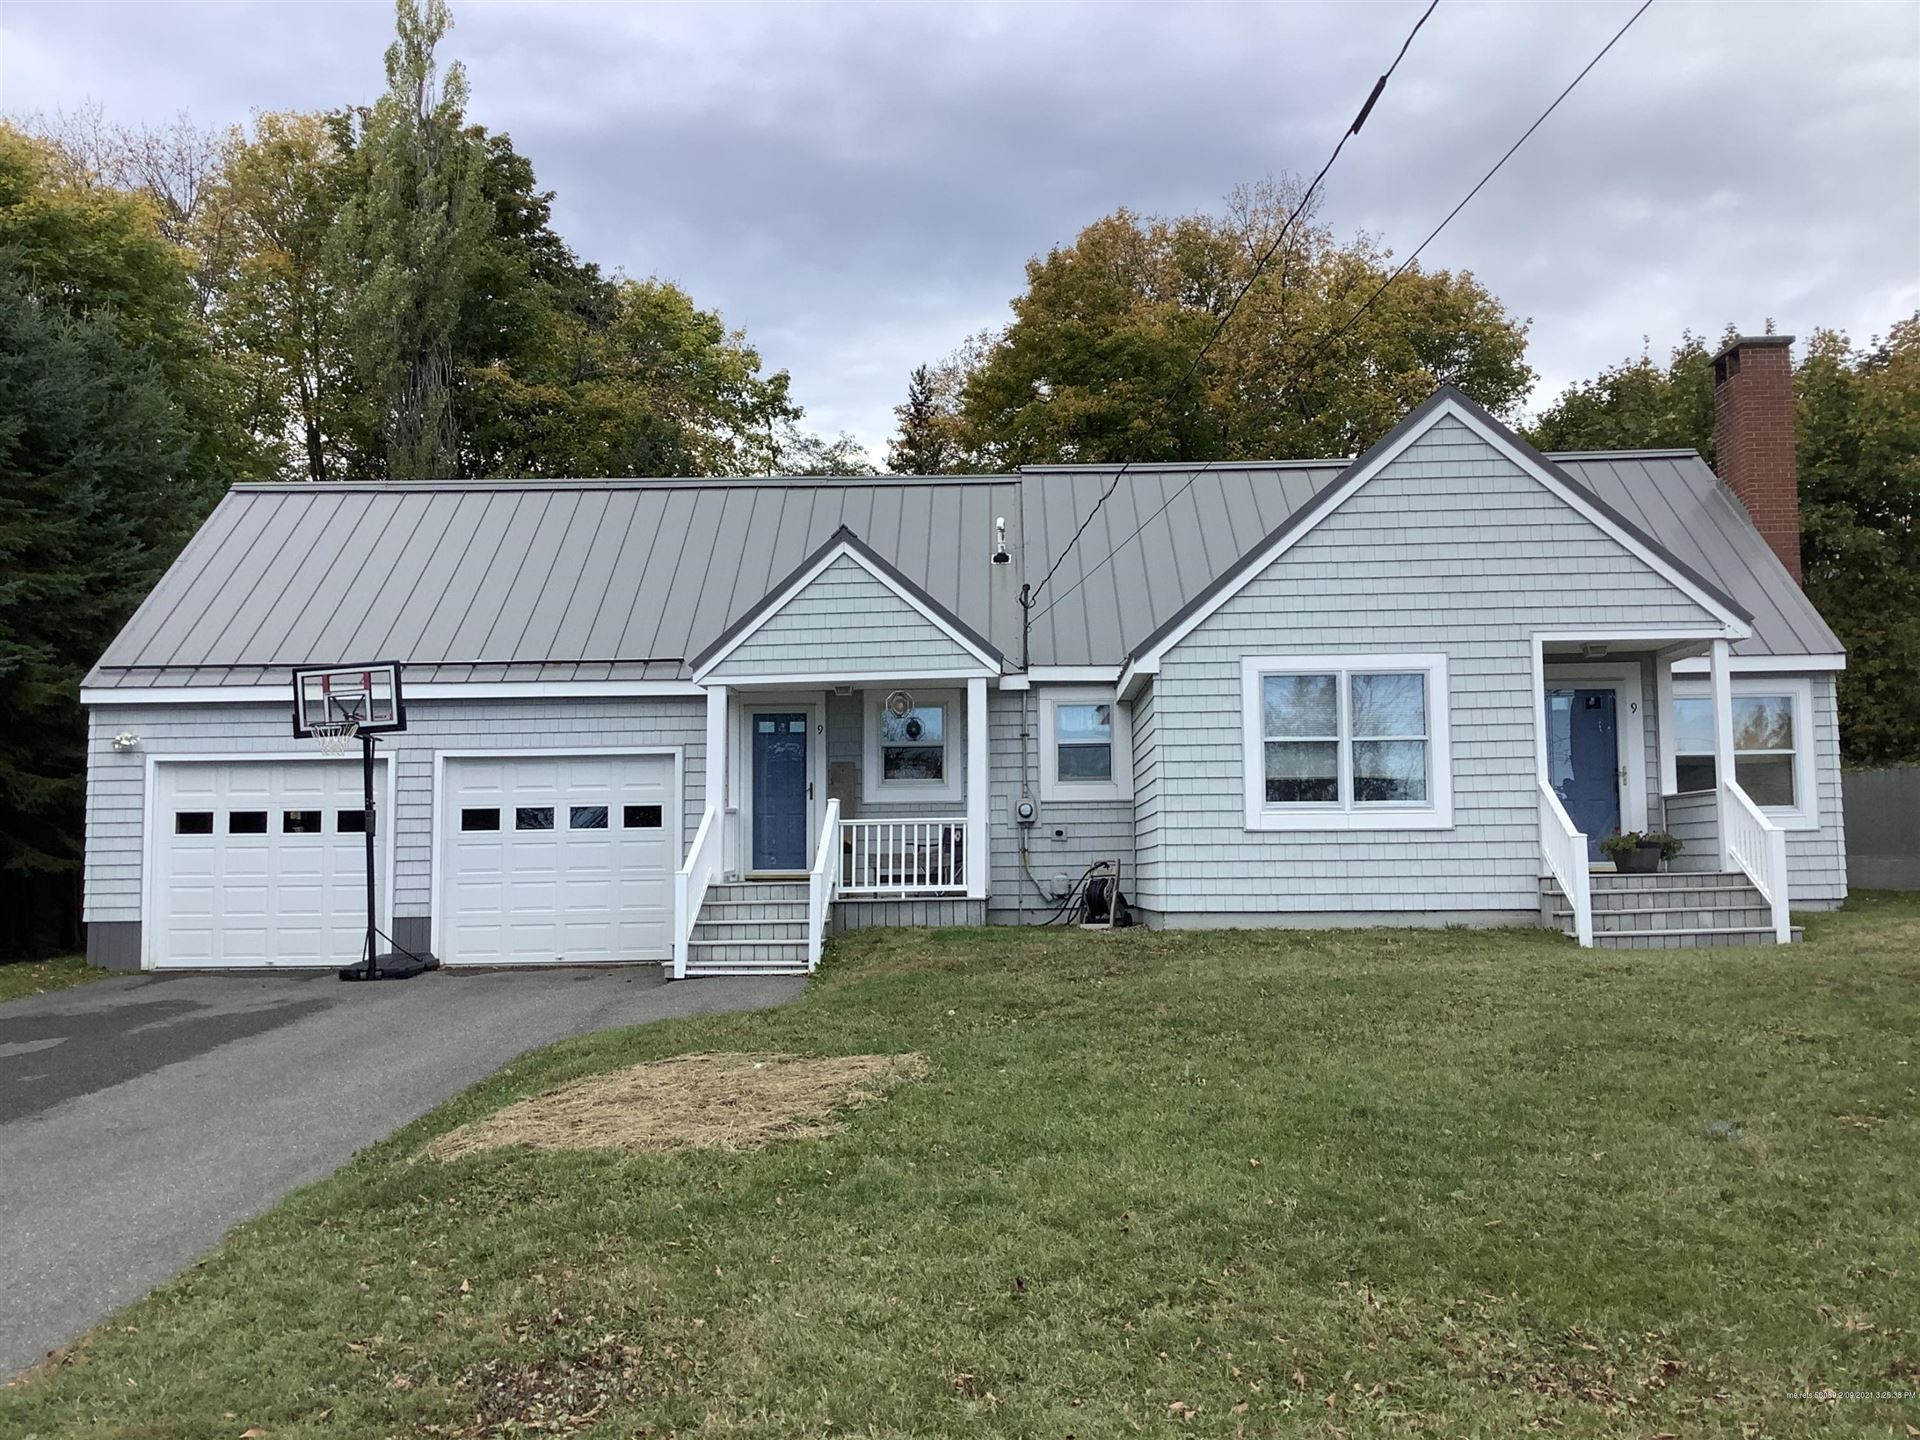 Photo of 9 Windy Hill Drive, Caribou, ME 04736 (MLS # 1481670)